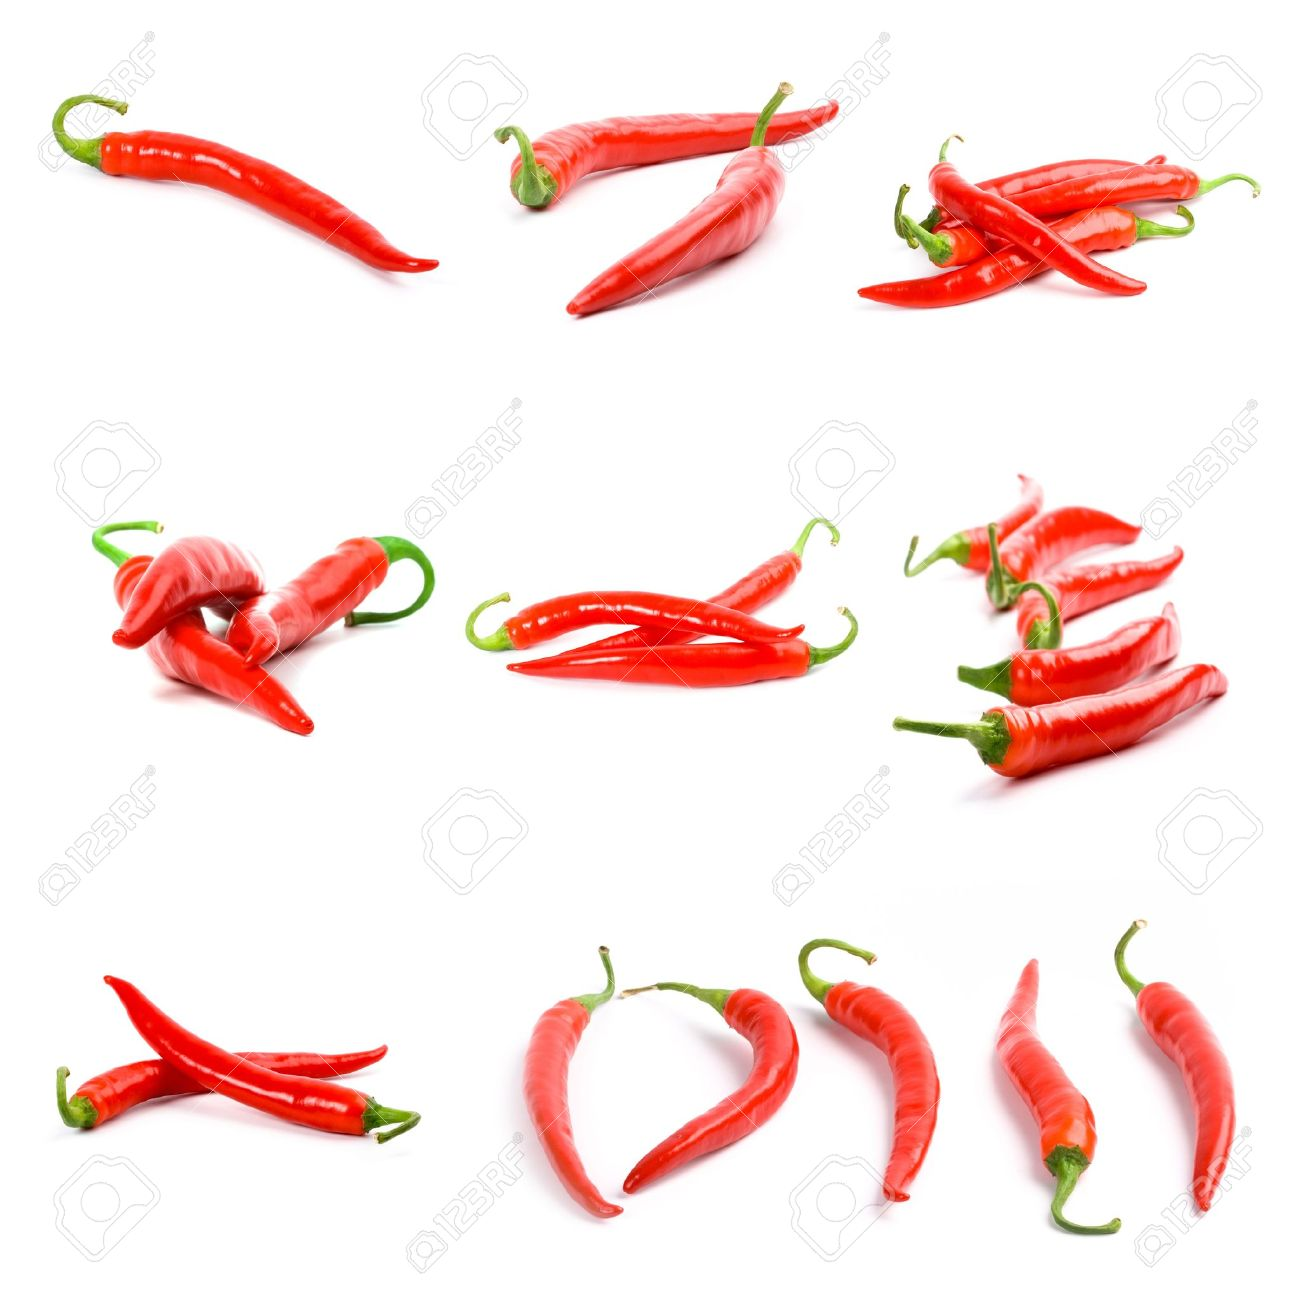 collection of red chili peppers isolated on white background Stock Photo - 6485792